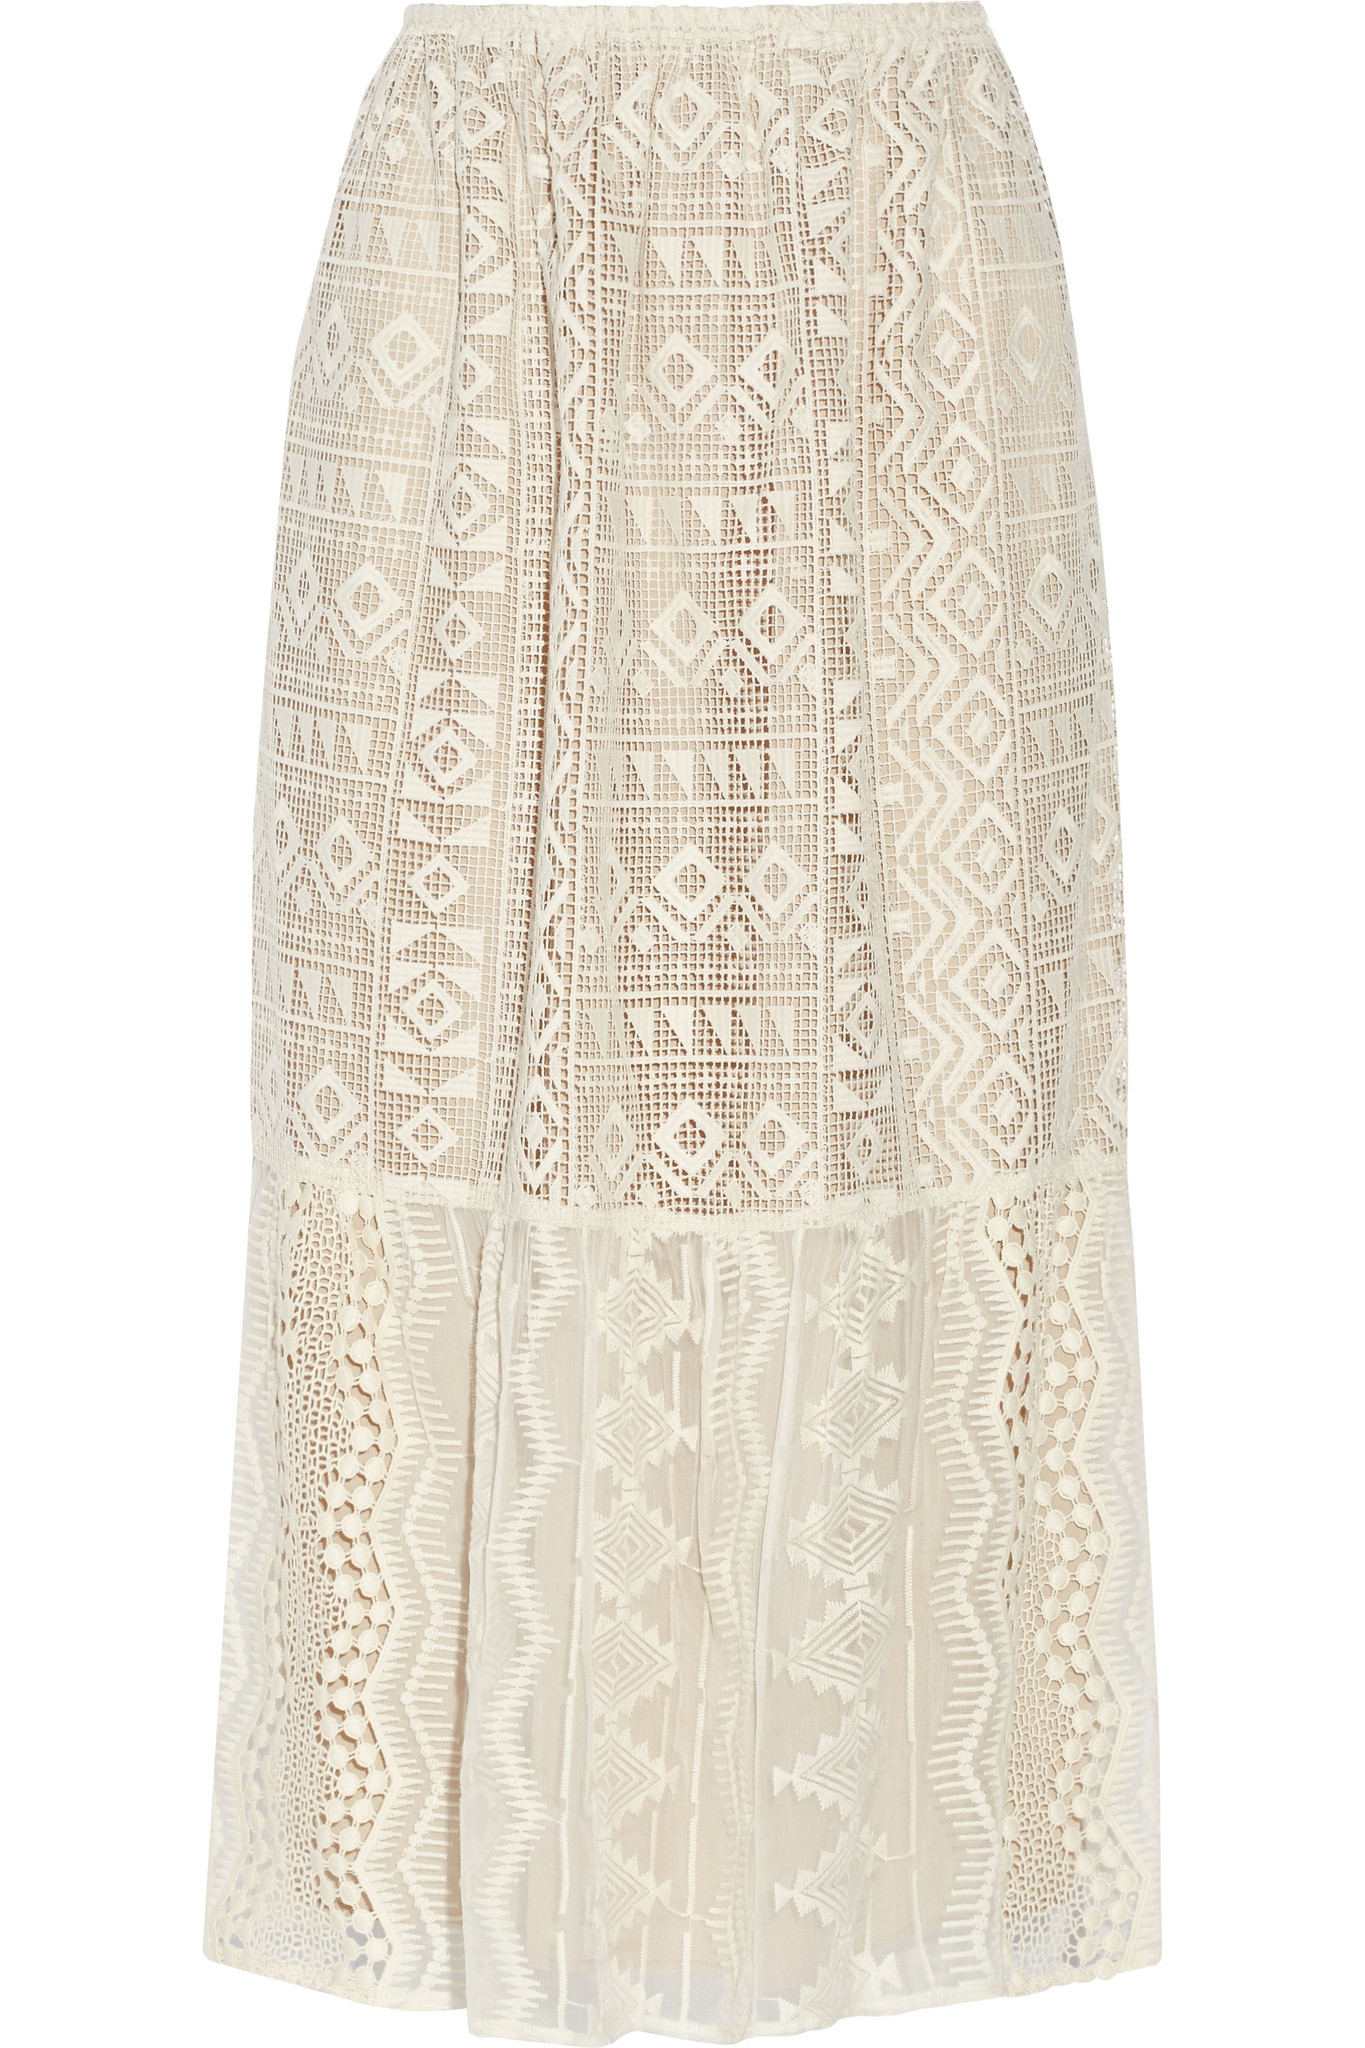 2019 year lifestyle- Pencil lace skirt cream